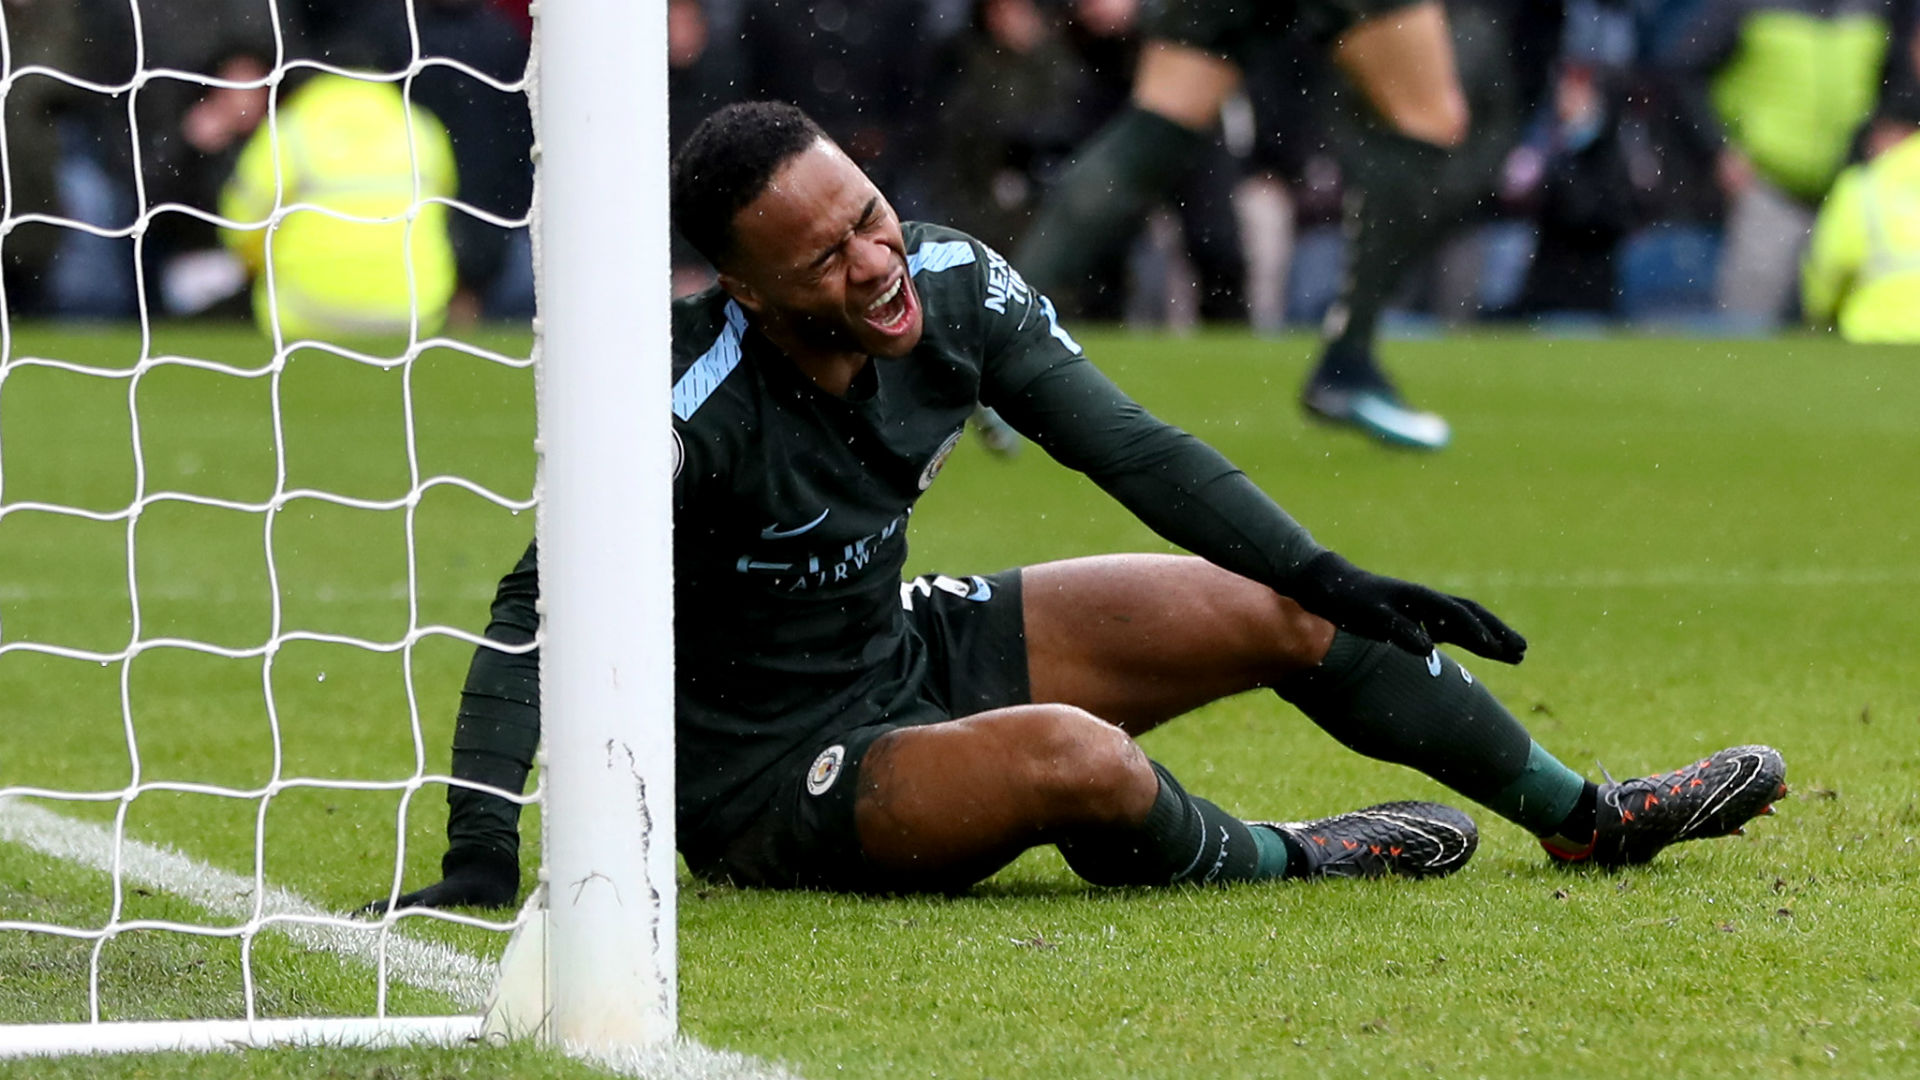 English Premier League: Sterling blunders as Burnley hold Manchester City 1-1